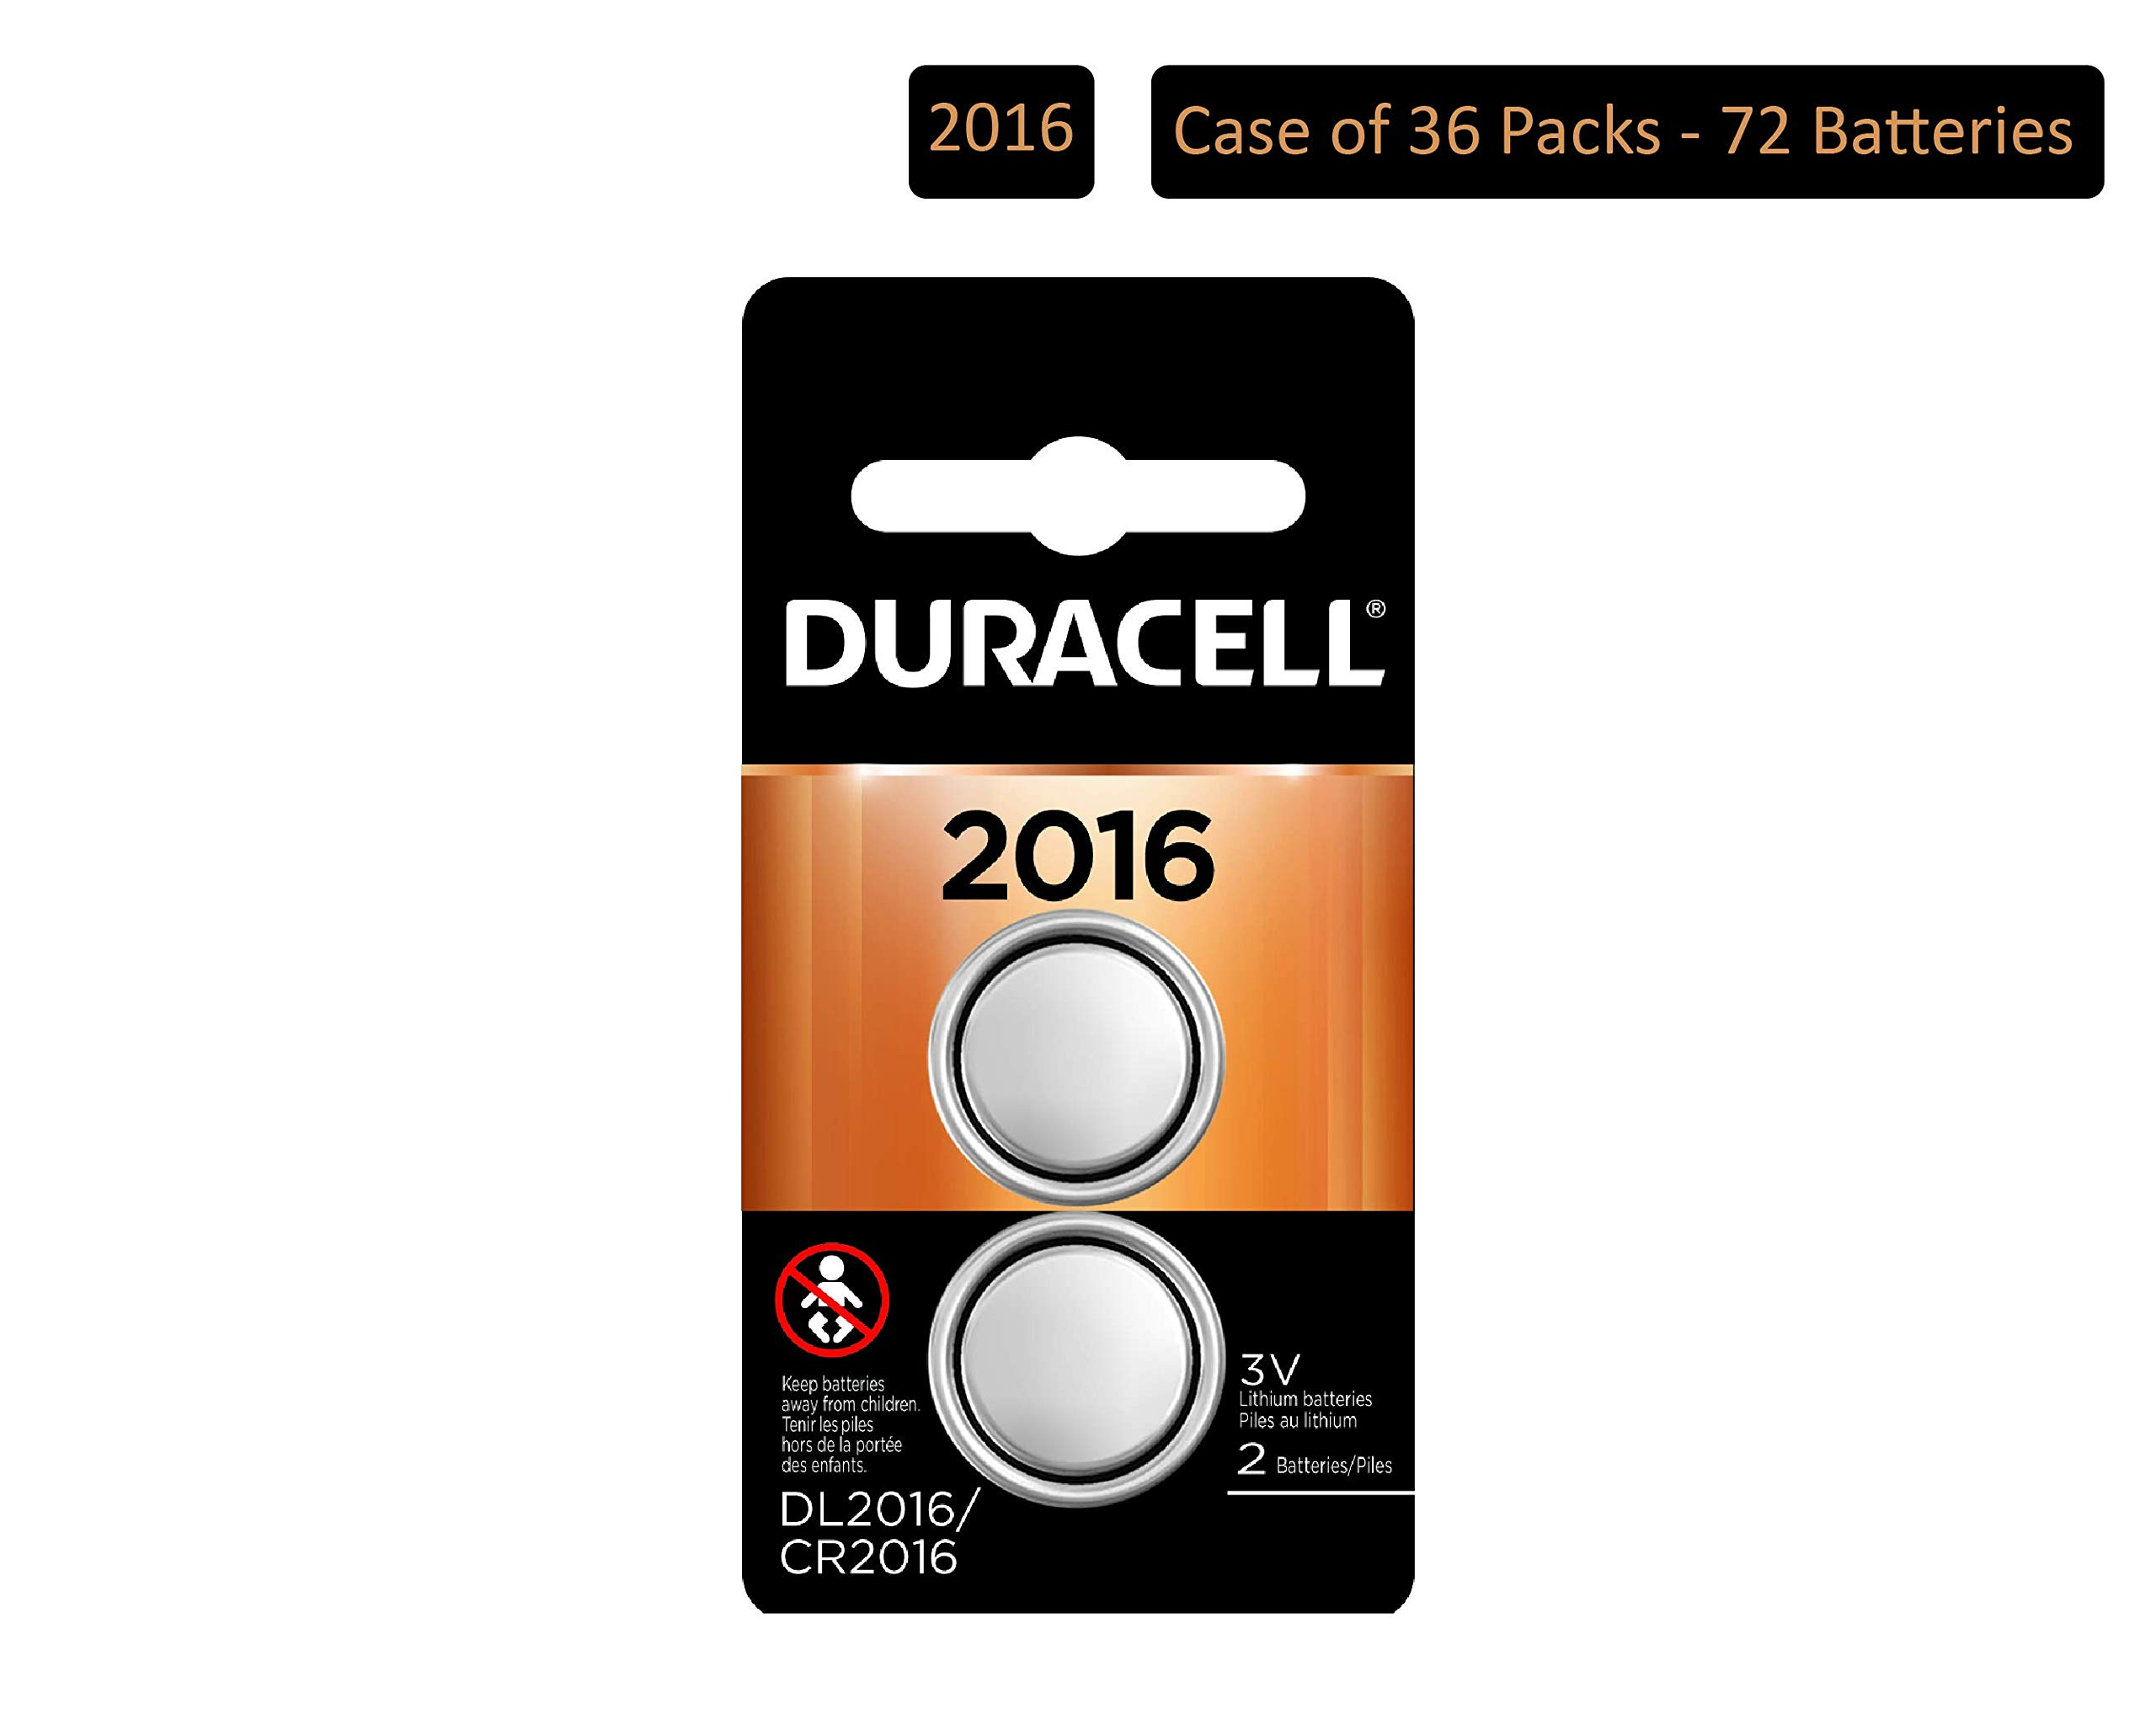 Duracell - 2016 3V Lithium Coin Battery - long lasting battery - 2 count (Pack of 36)